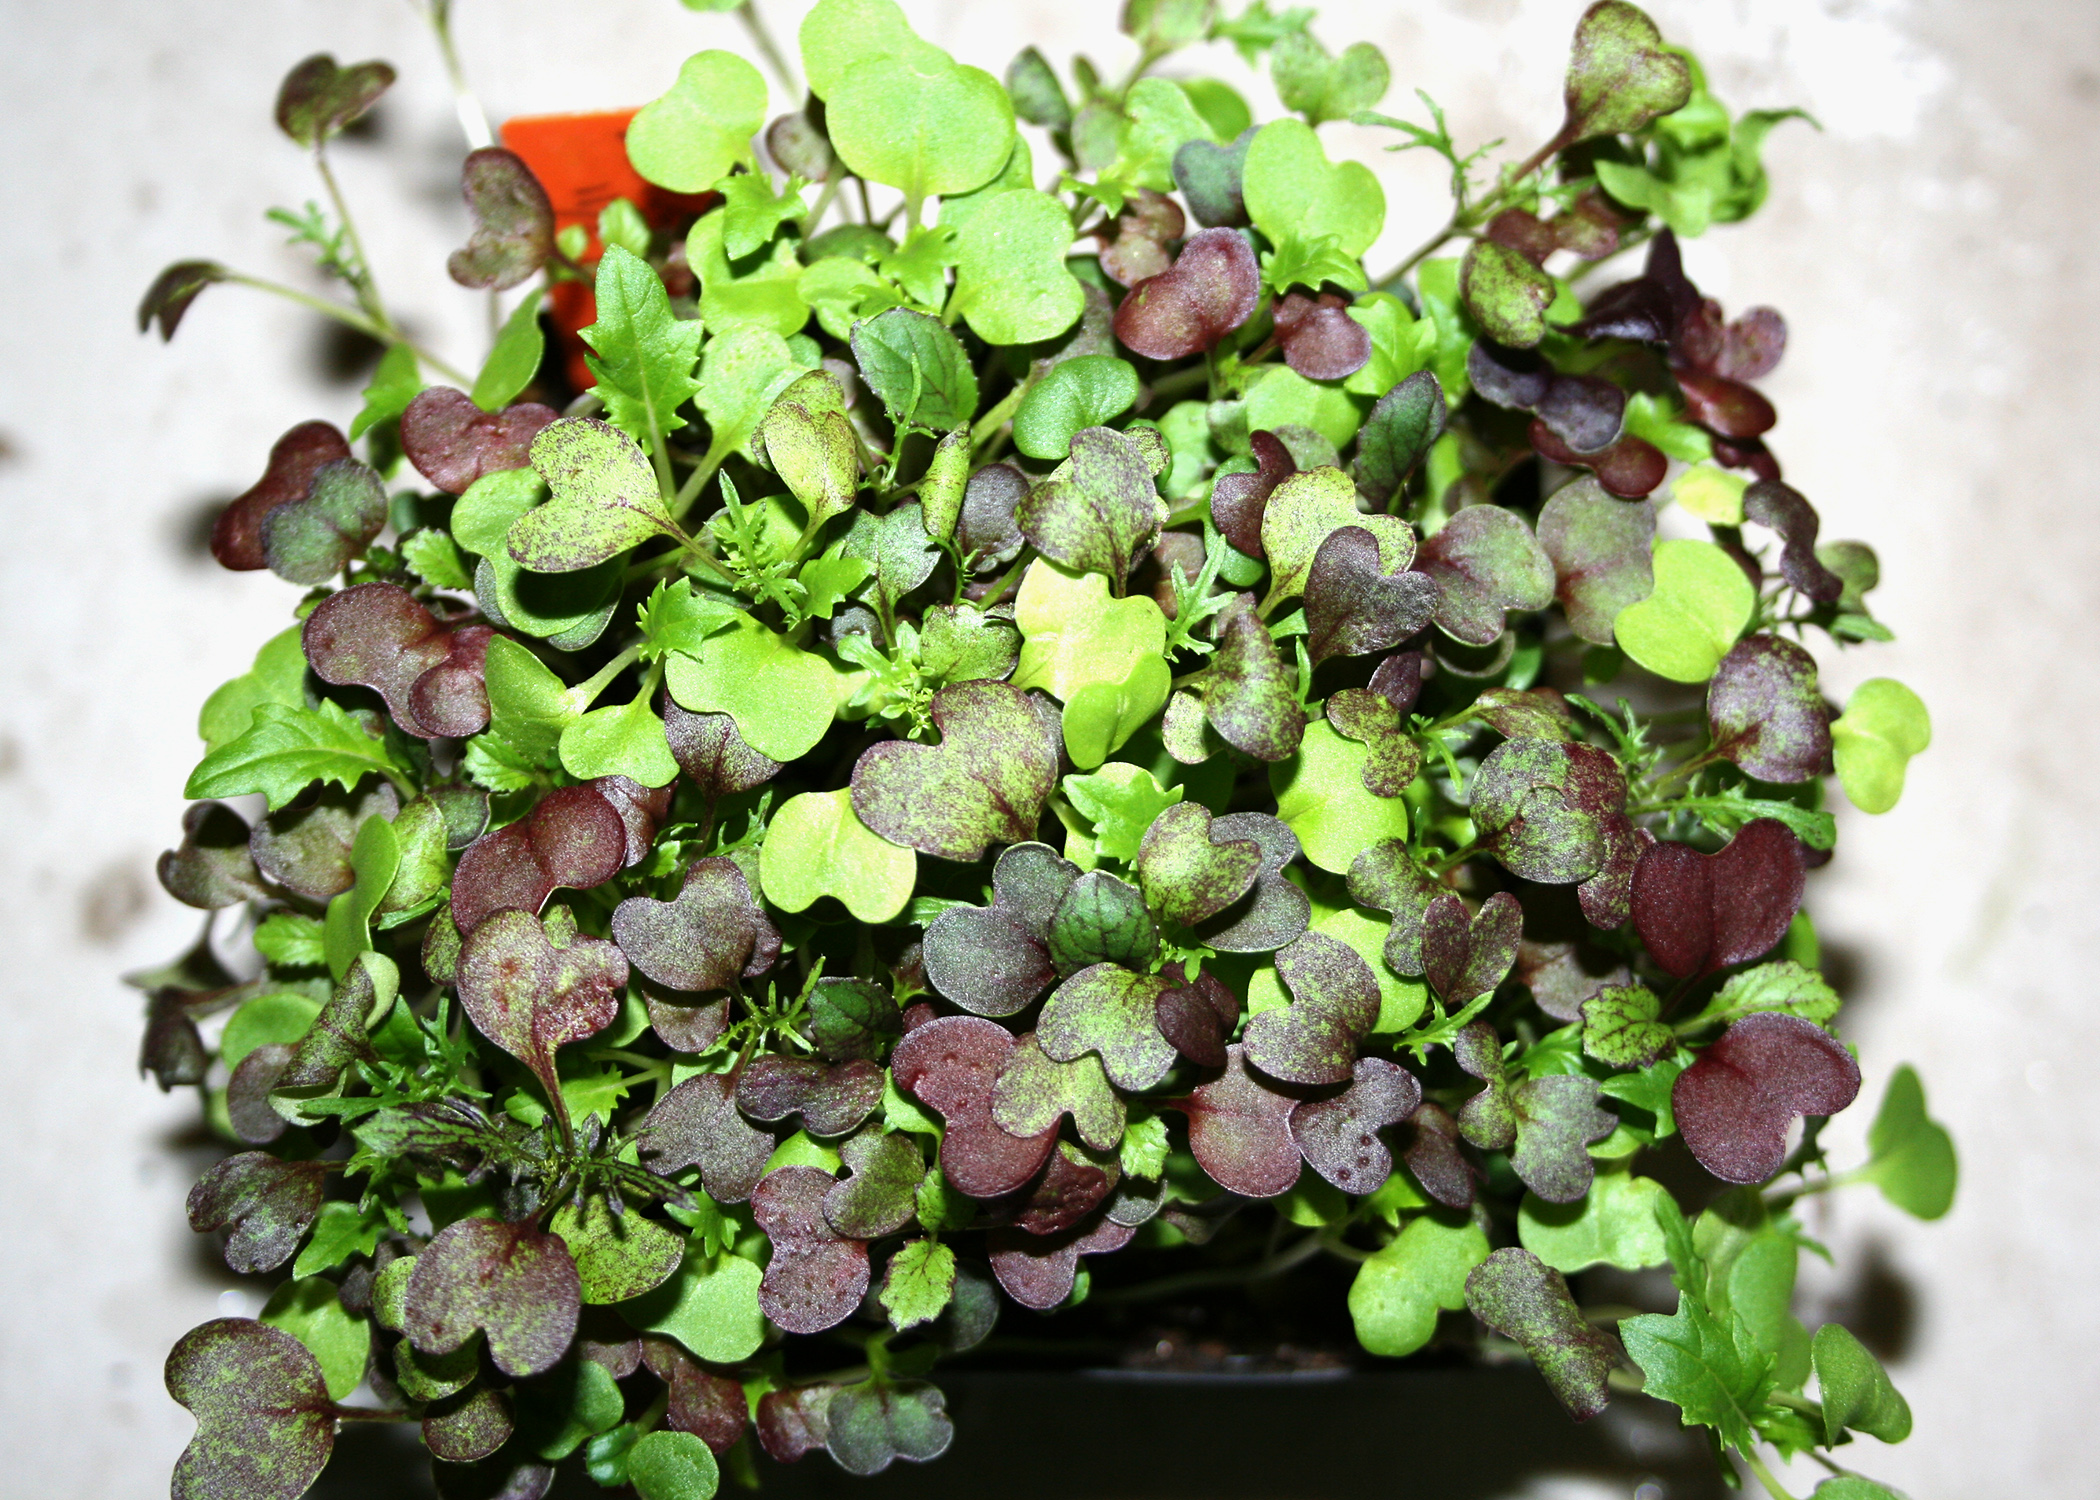 Microgreens Are Nutritious Grow Quickly Indoors